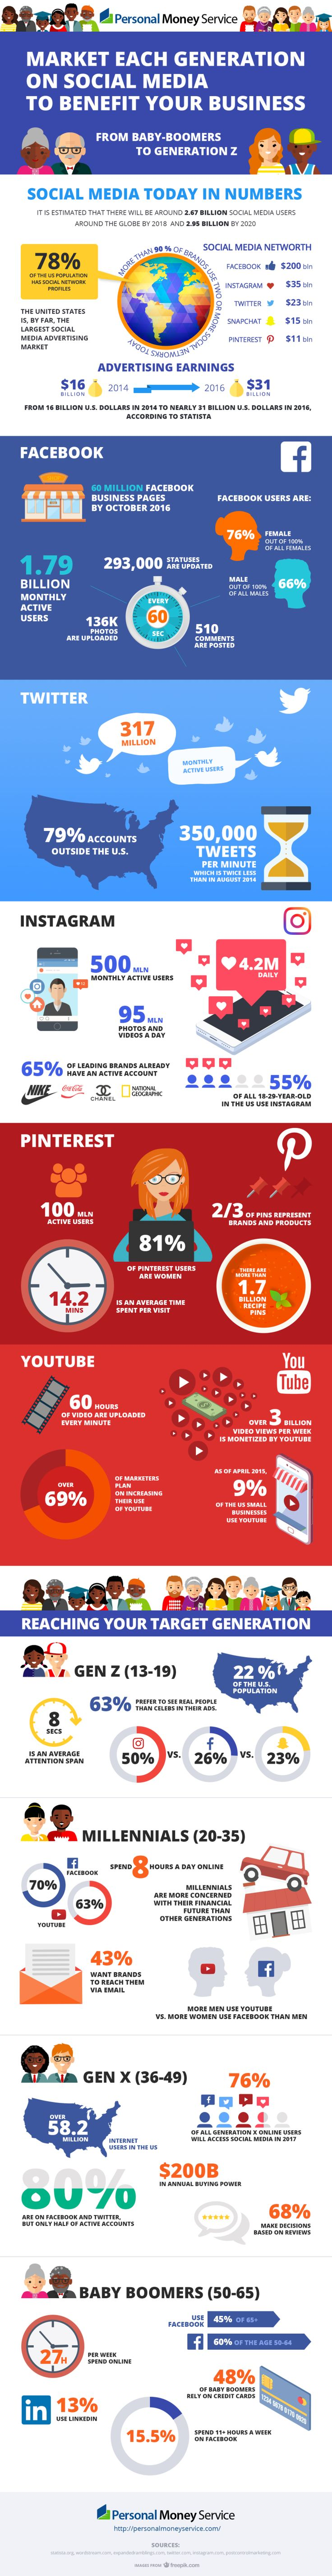 Surprising Stats on Every Generation's Social Media Habits (Infographic)